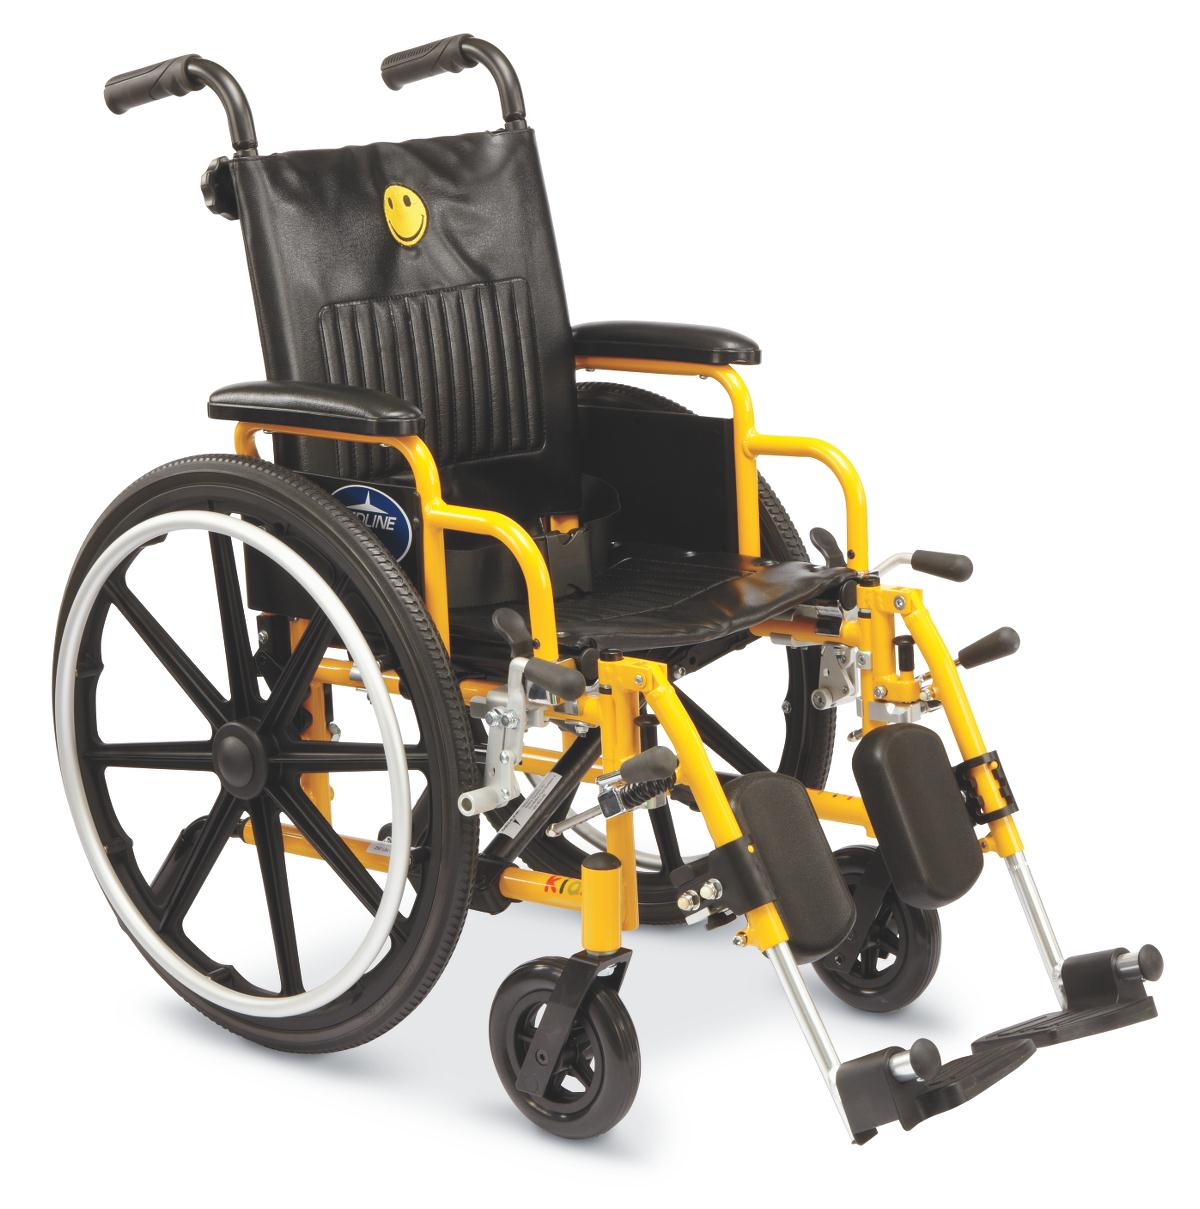 wheelchair accessories ebay iron horse chairs medline parts all brands